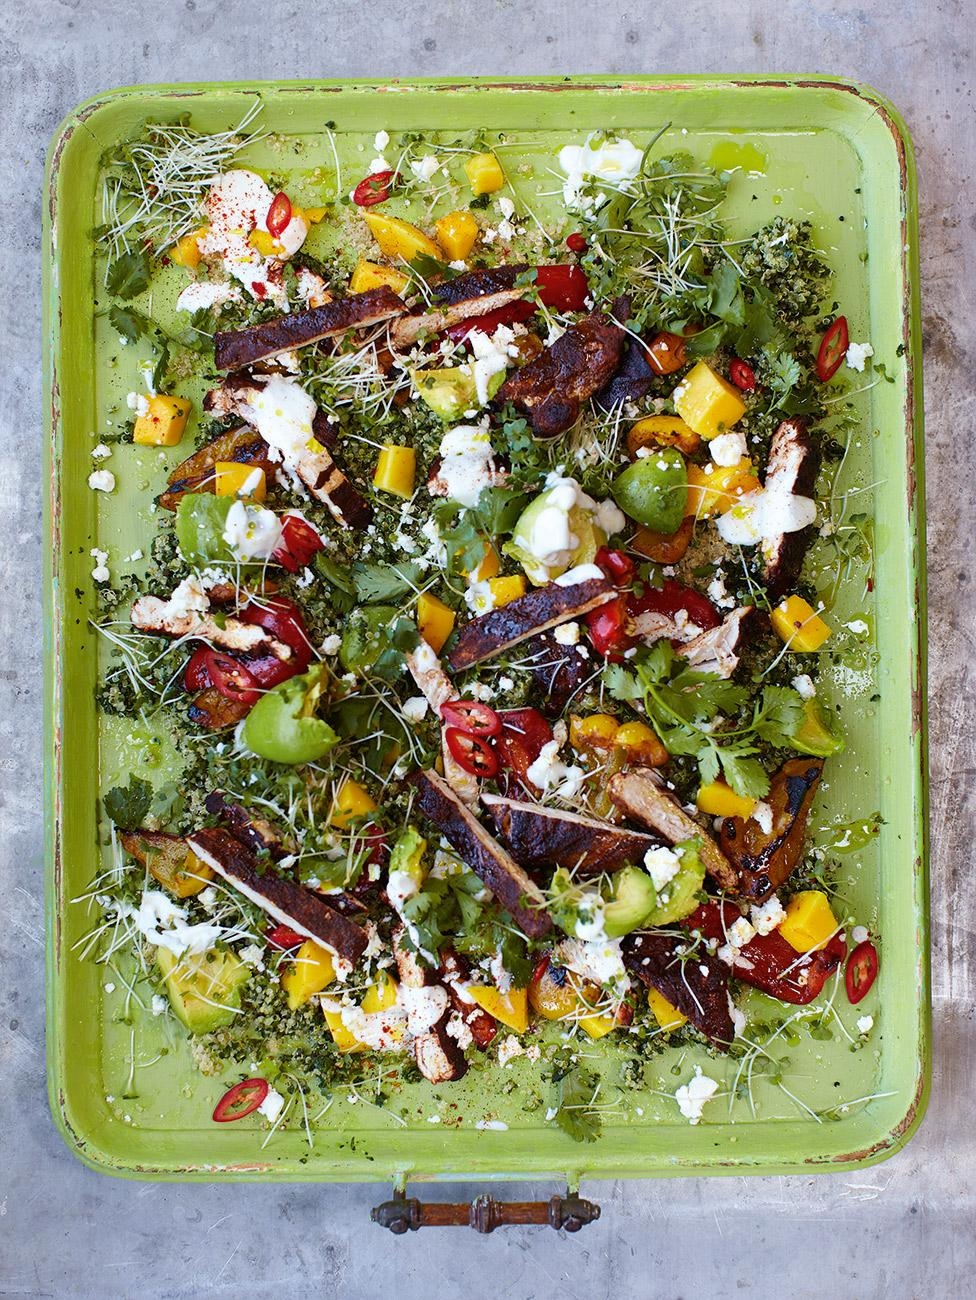 Healthy ways to use fruit jamie oliver blackened chicken with quinoa salad ccuart Gallery